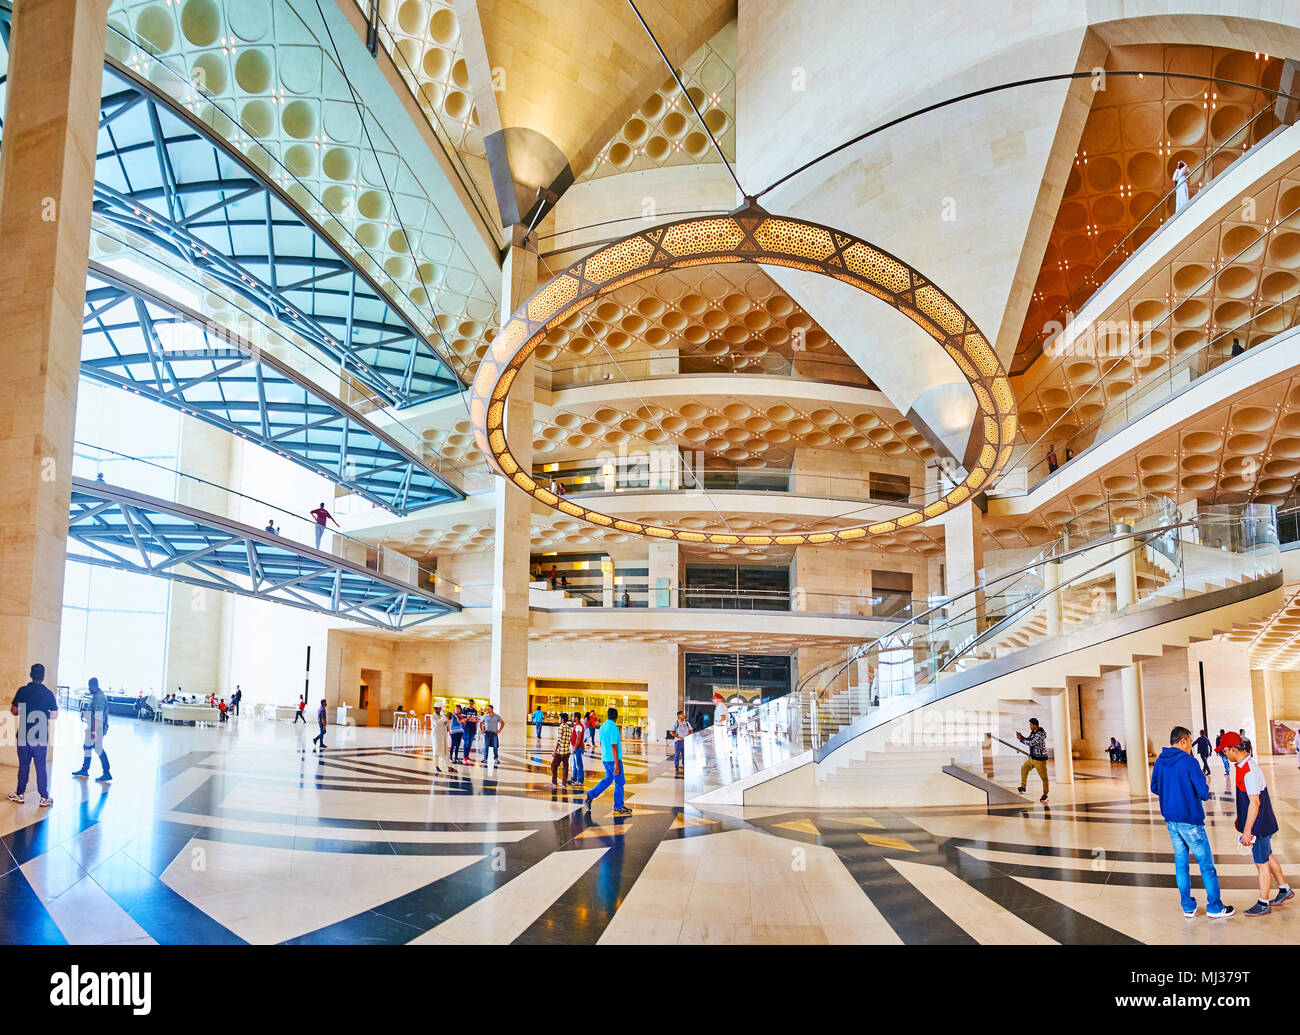 DOHA, QATAR   FEBRUARY 13, 2018: Panorama Of Hall Of Islamic Art Museum    The Perfect Example Of Modern Architecture And Interior Design In Qatar, On